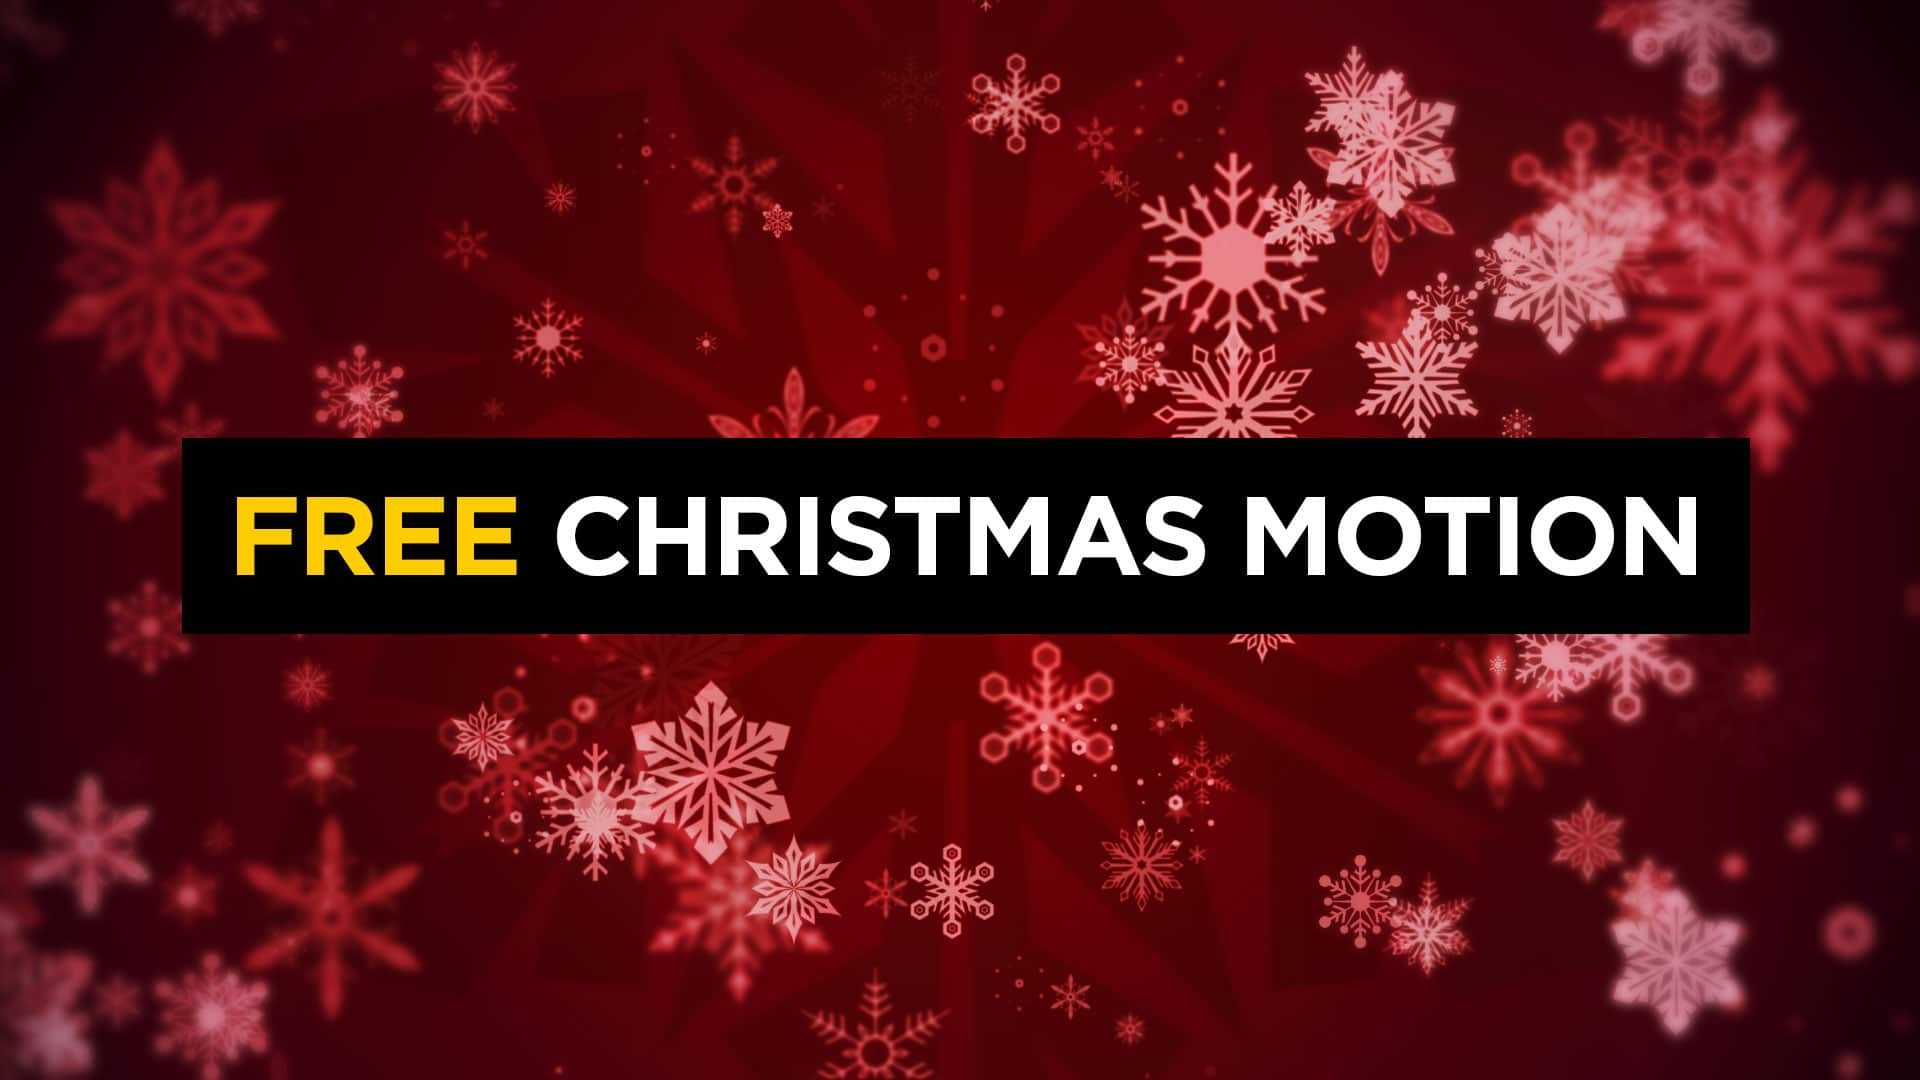 Christmas Snowflake Motion Background CMG Church Motion 1920x1080